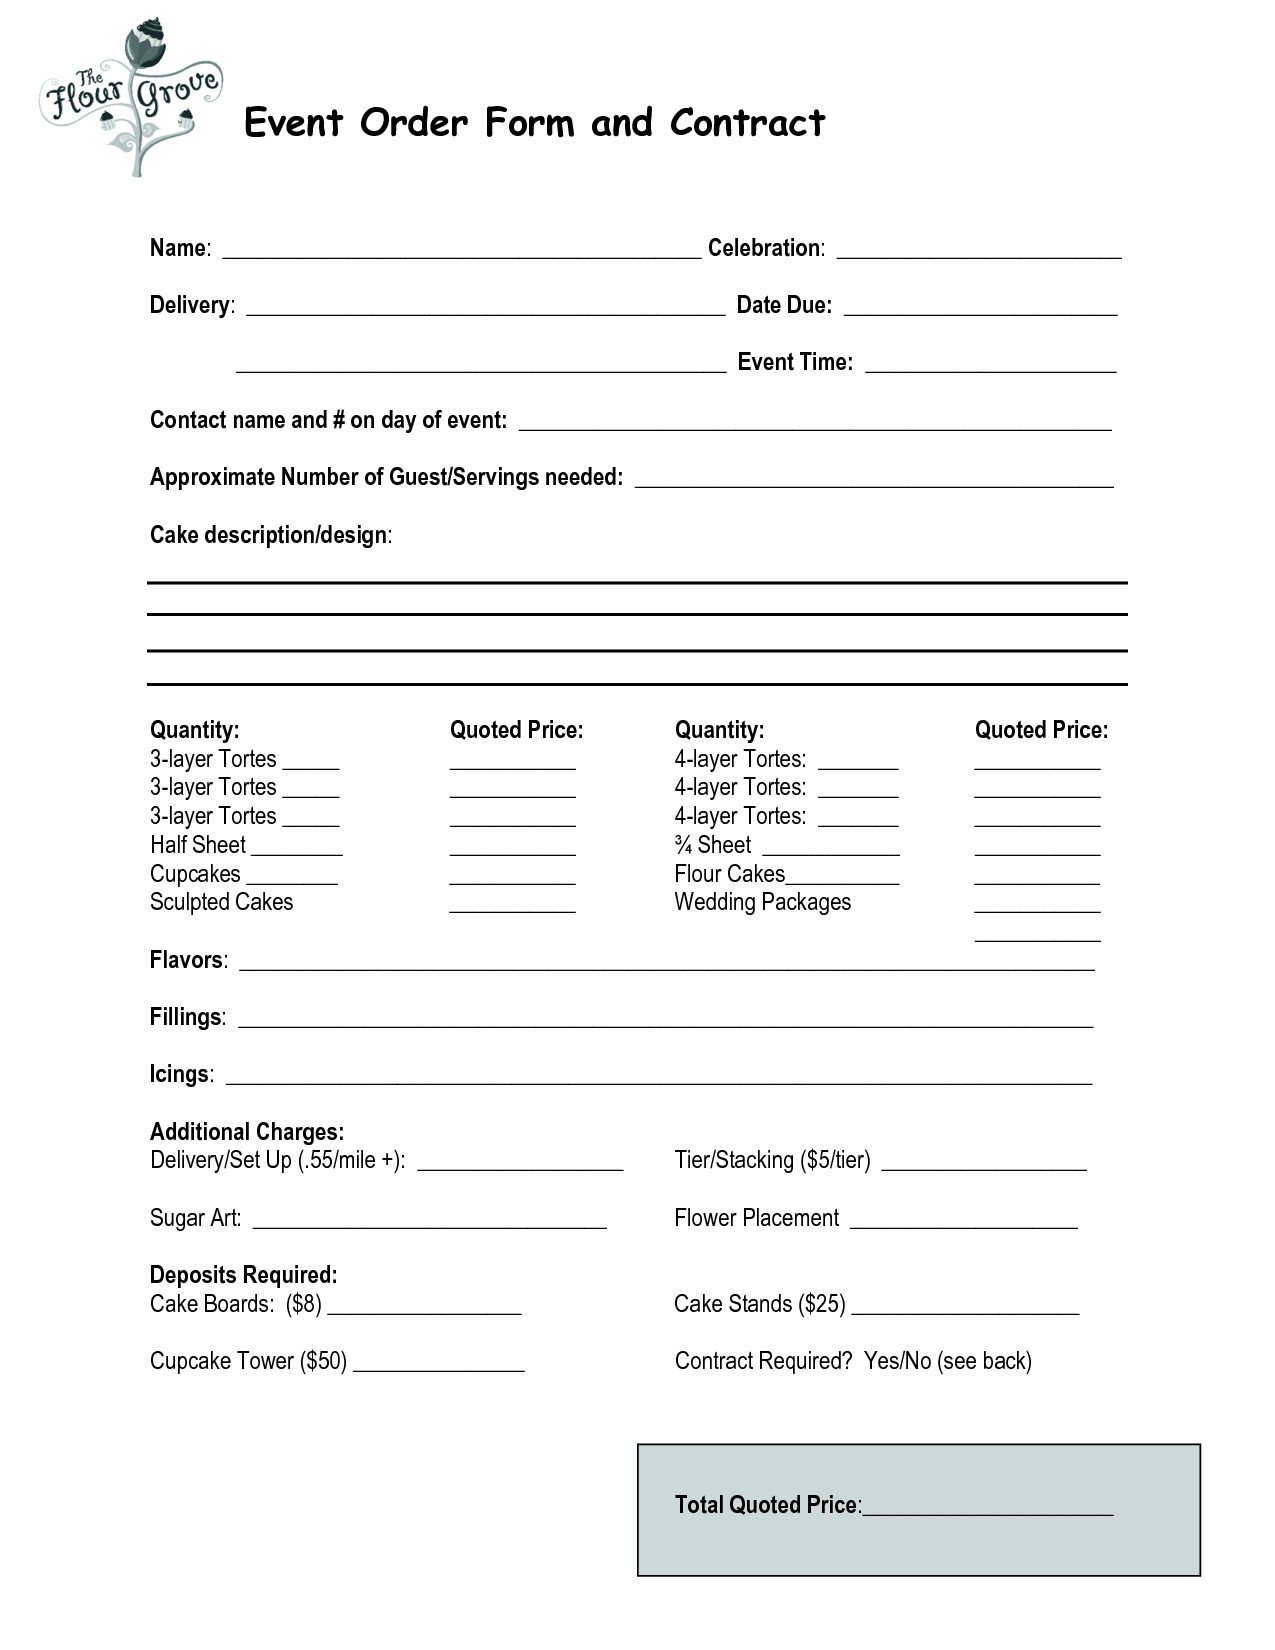 Free Cake Contract Template Cake order Contract event order form and Contract